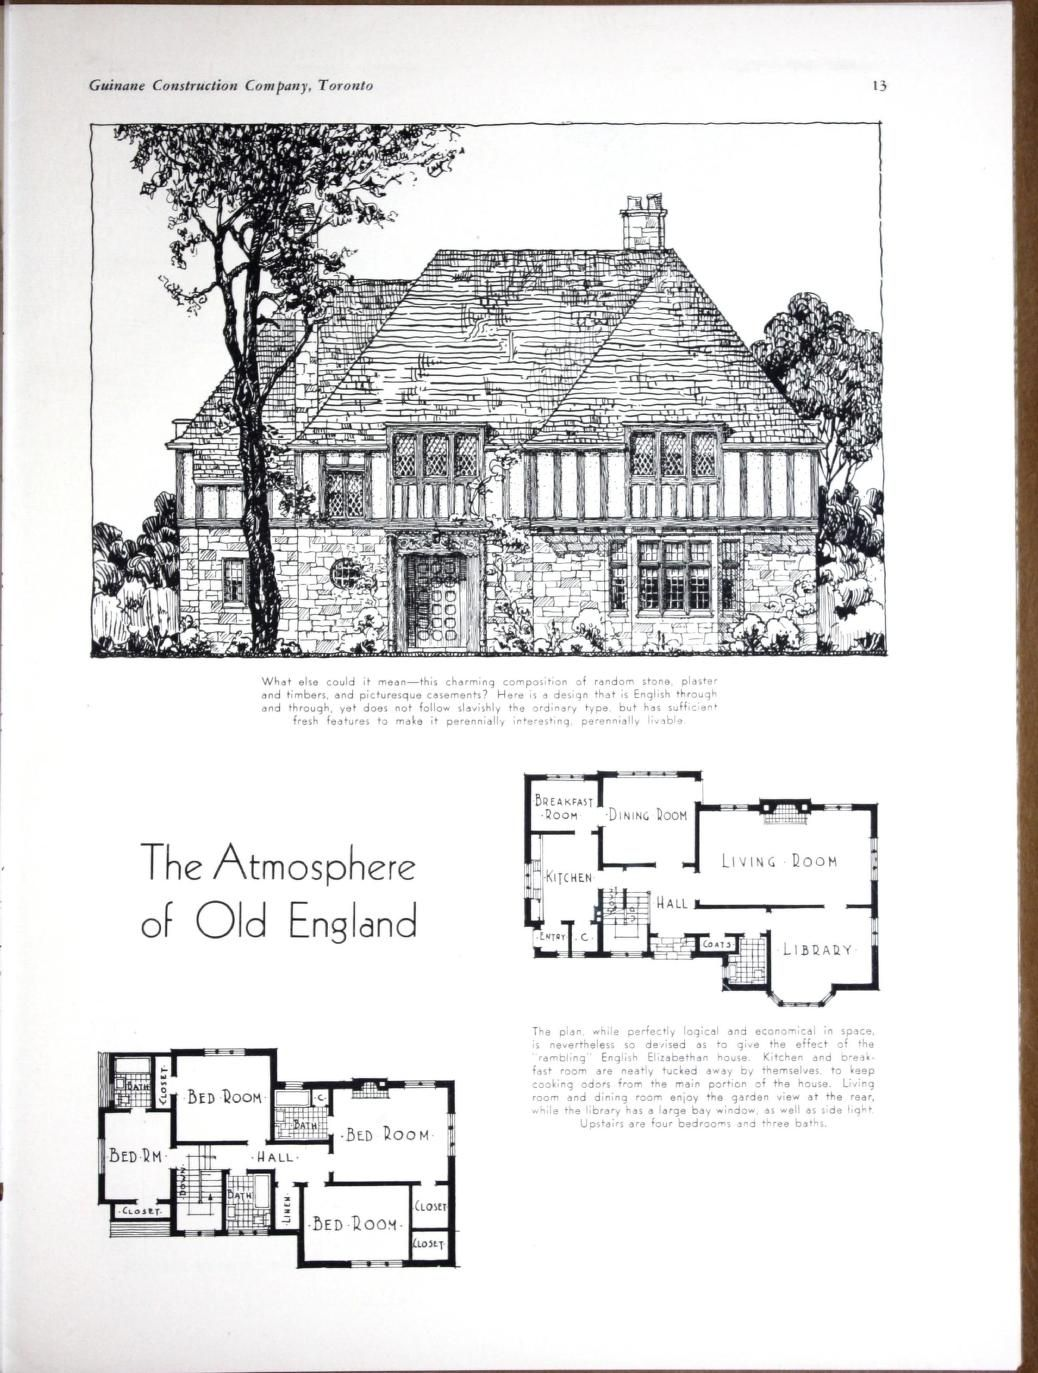 Planning Building Financing The Home By Guinane Construction Company Published 1932 Vintage House Plans House Floor Plans Mansion Plans